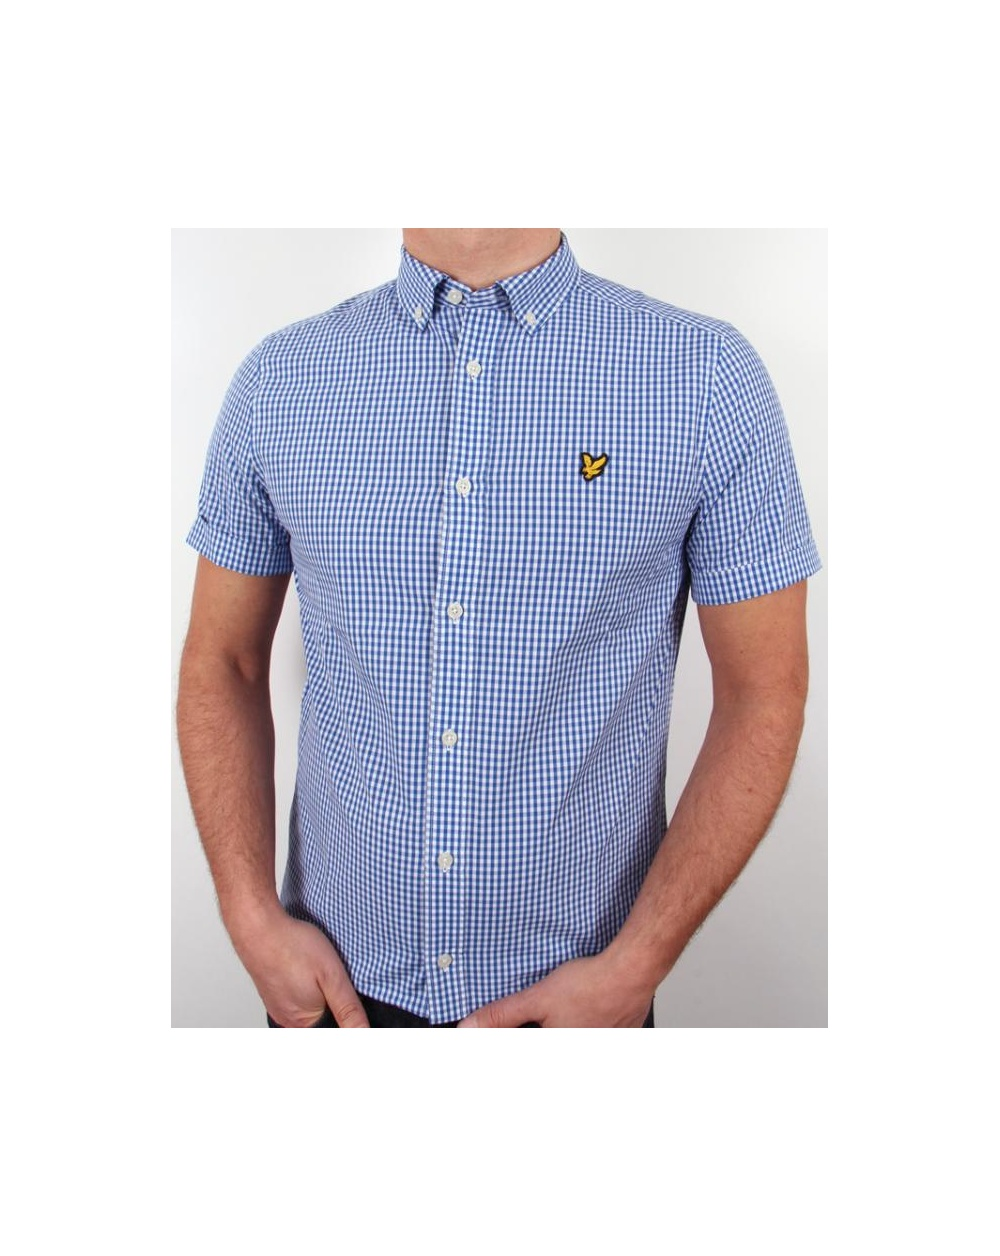 Lyle and scott short sleeve gingham check shirt french for French cut shirt sleeve